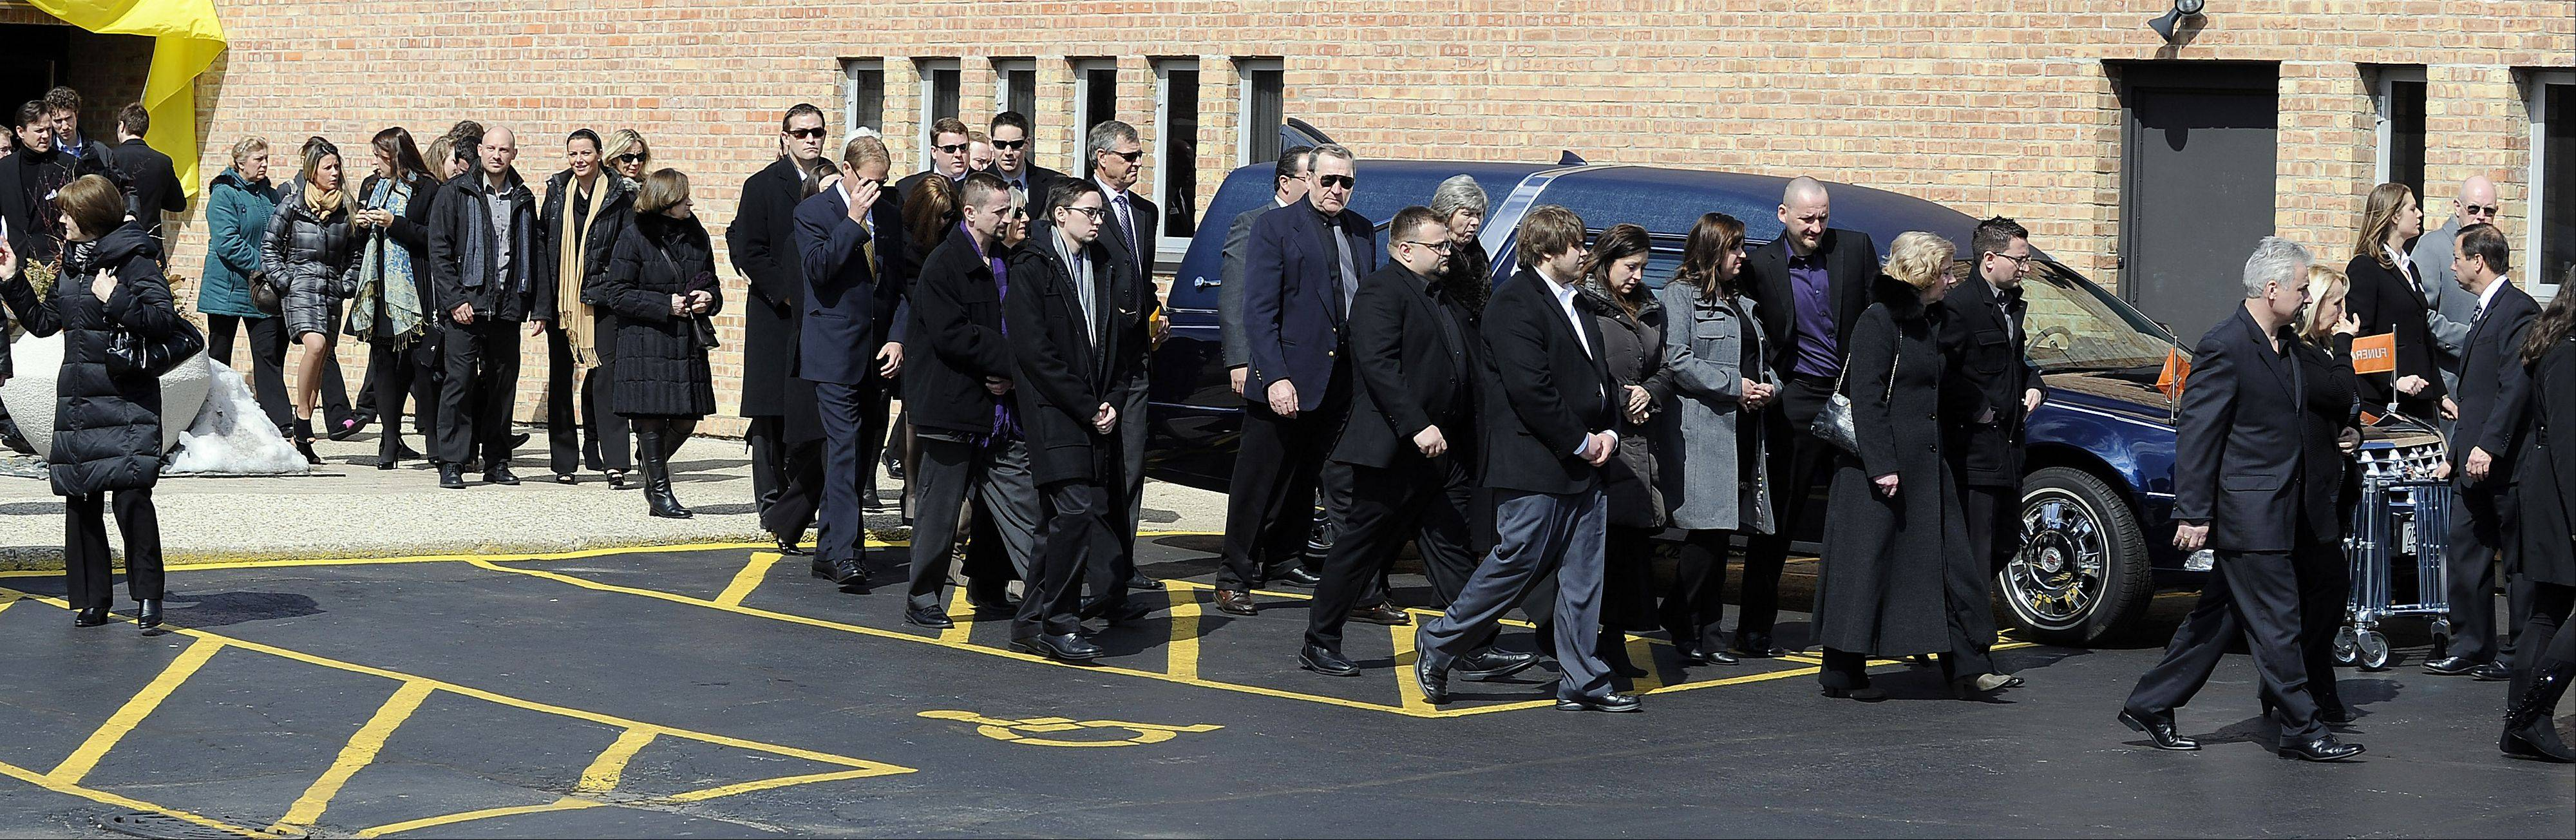 Mourners file past the casket of Rob Komosa after they attended his funeral service at St. Thomas Becket Church in Mount Prospect on Saturday.